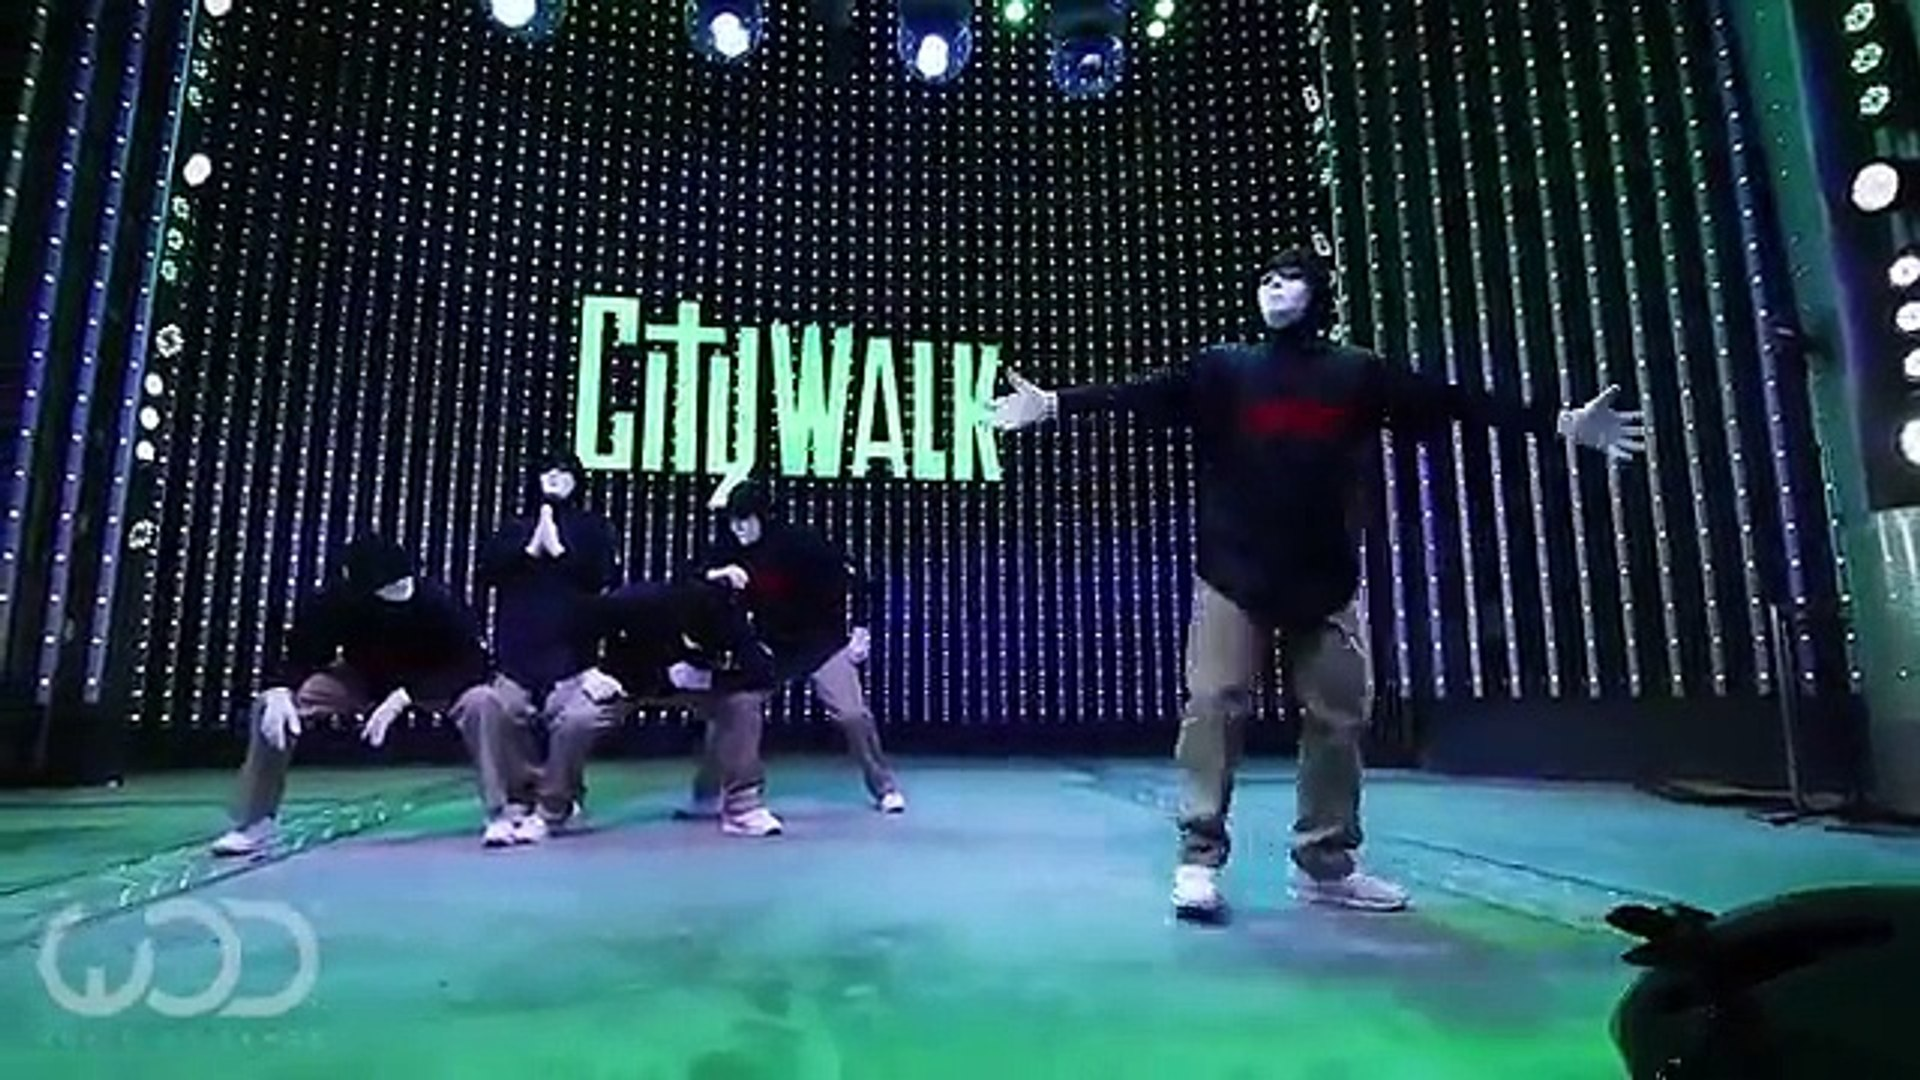 Jabbawockeez World of Dance Live FRONTROW Citywalk 2014 Great World of Dance Live